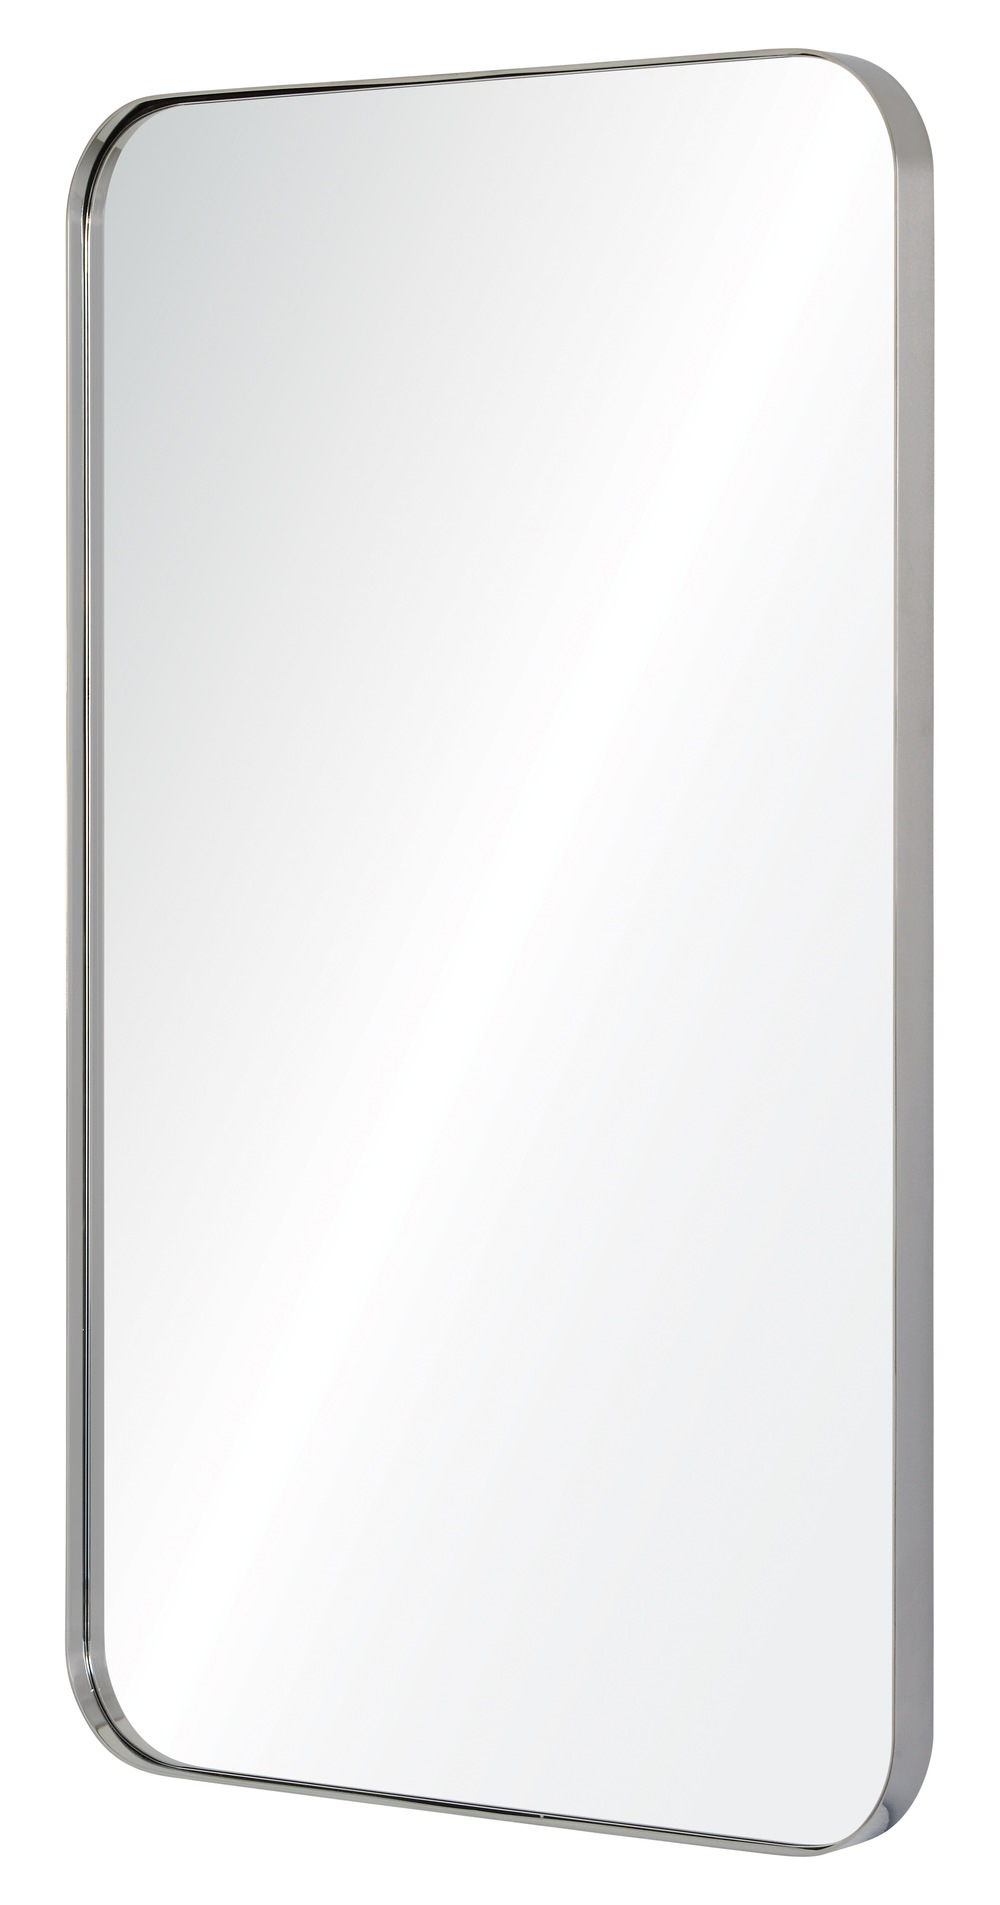 Mirror Image Home - Polished Stainless Steel Mirror